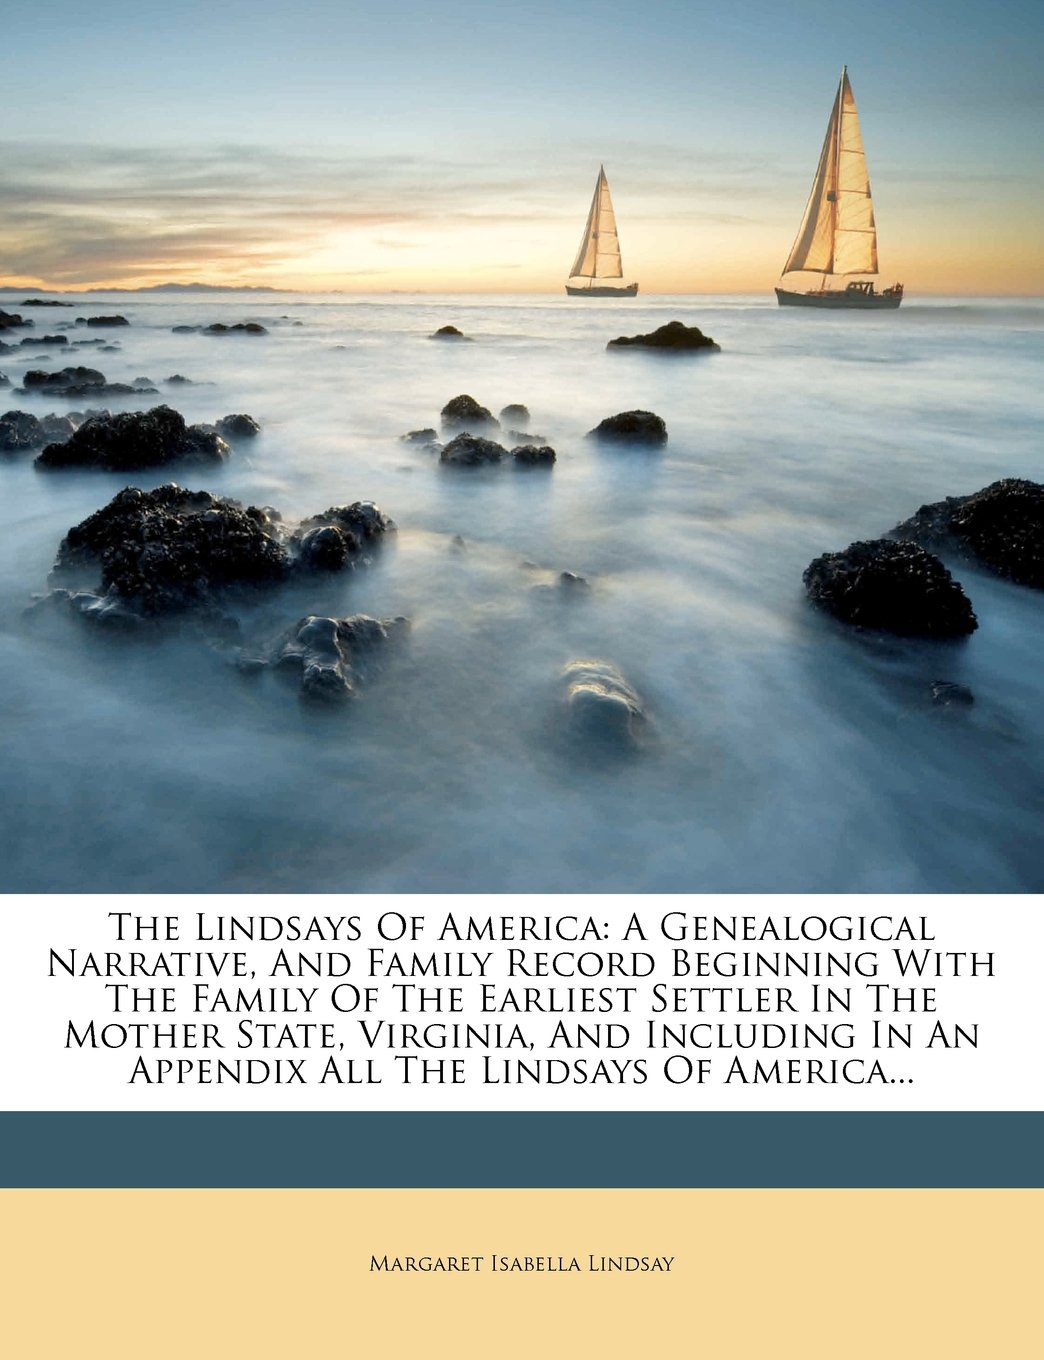 Read Online The Lindsays Of America: A Genealogical Narrative, And Family Record Beginning With The Family Of The Earliest Settler In The Mother State, Virginia. In An Appendix All The Lindsays Of America. pdf